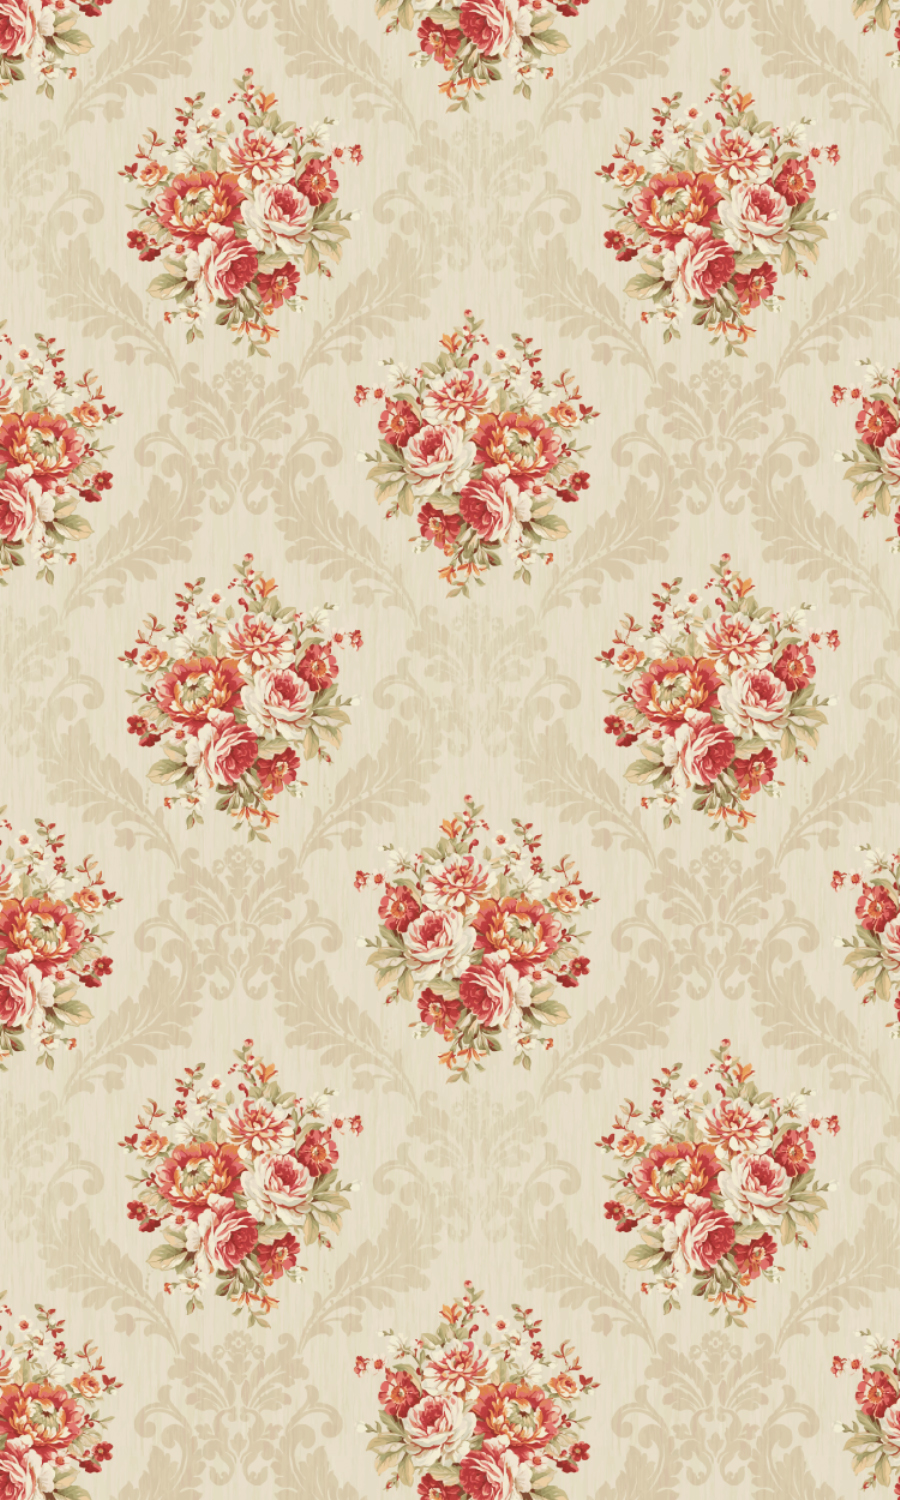 Royal Beige & Floral Print Curtains And Blinds